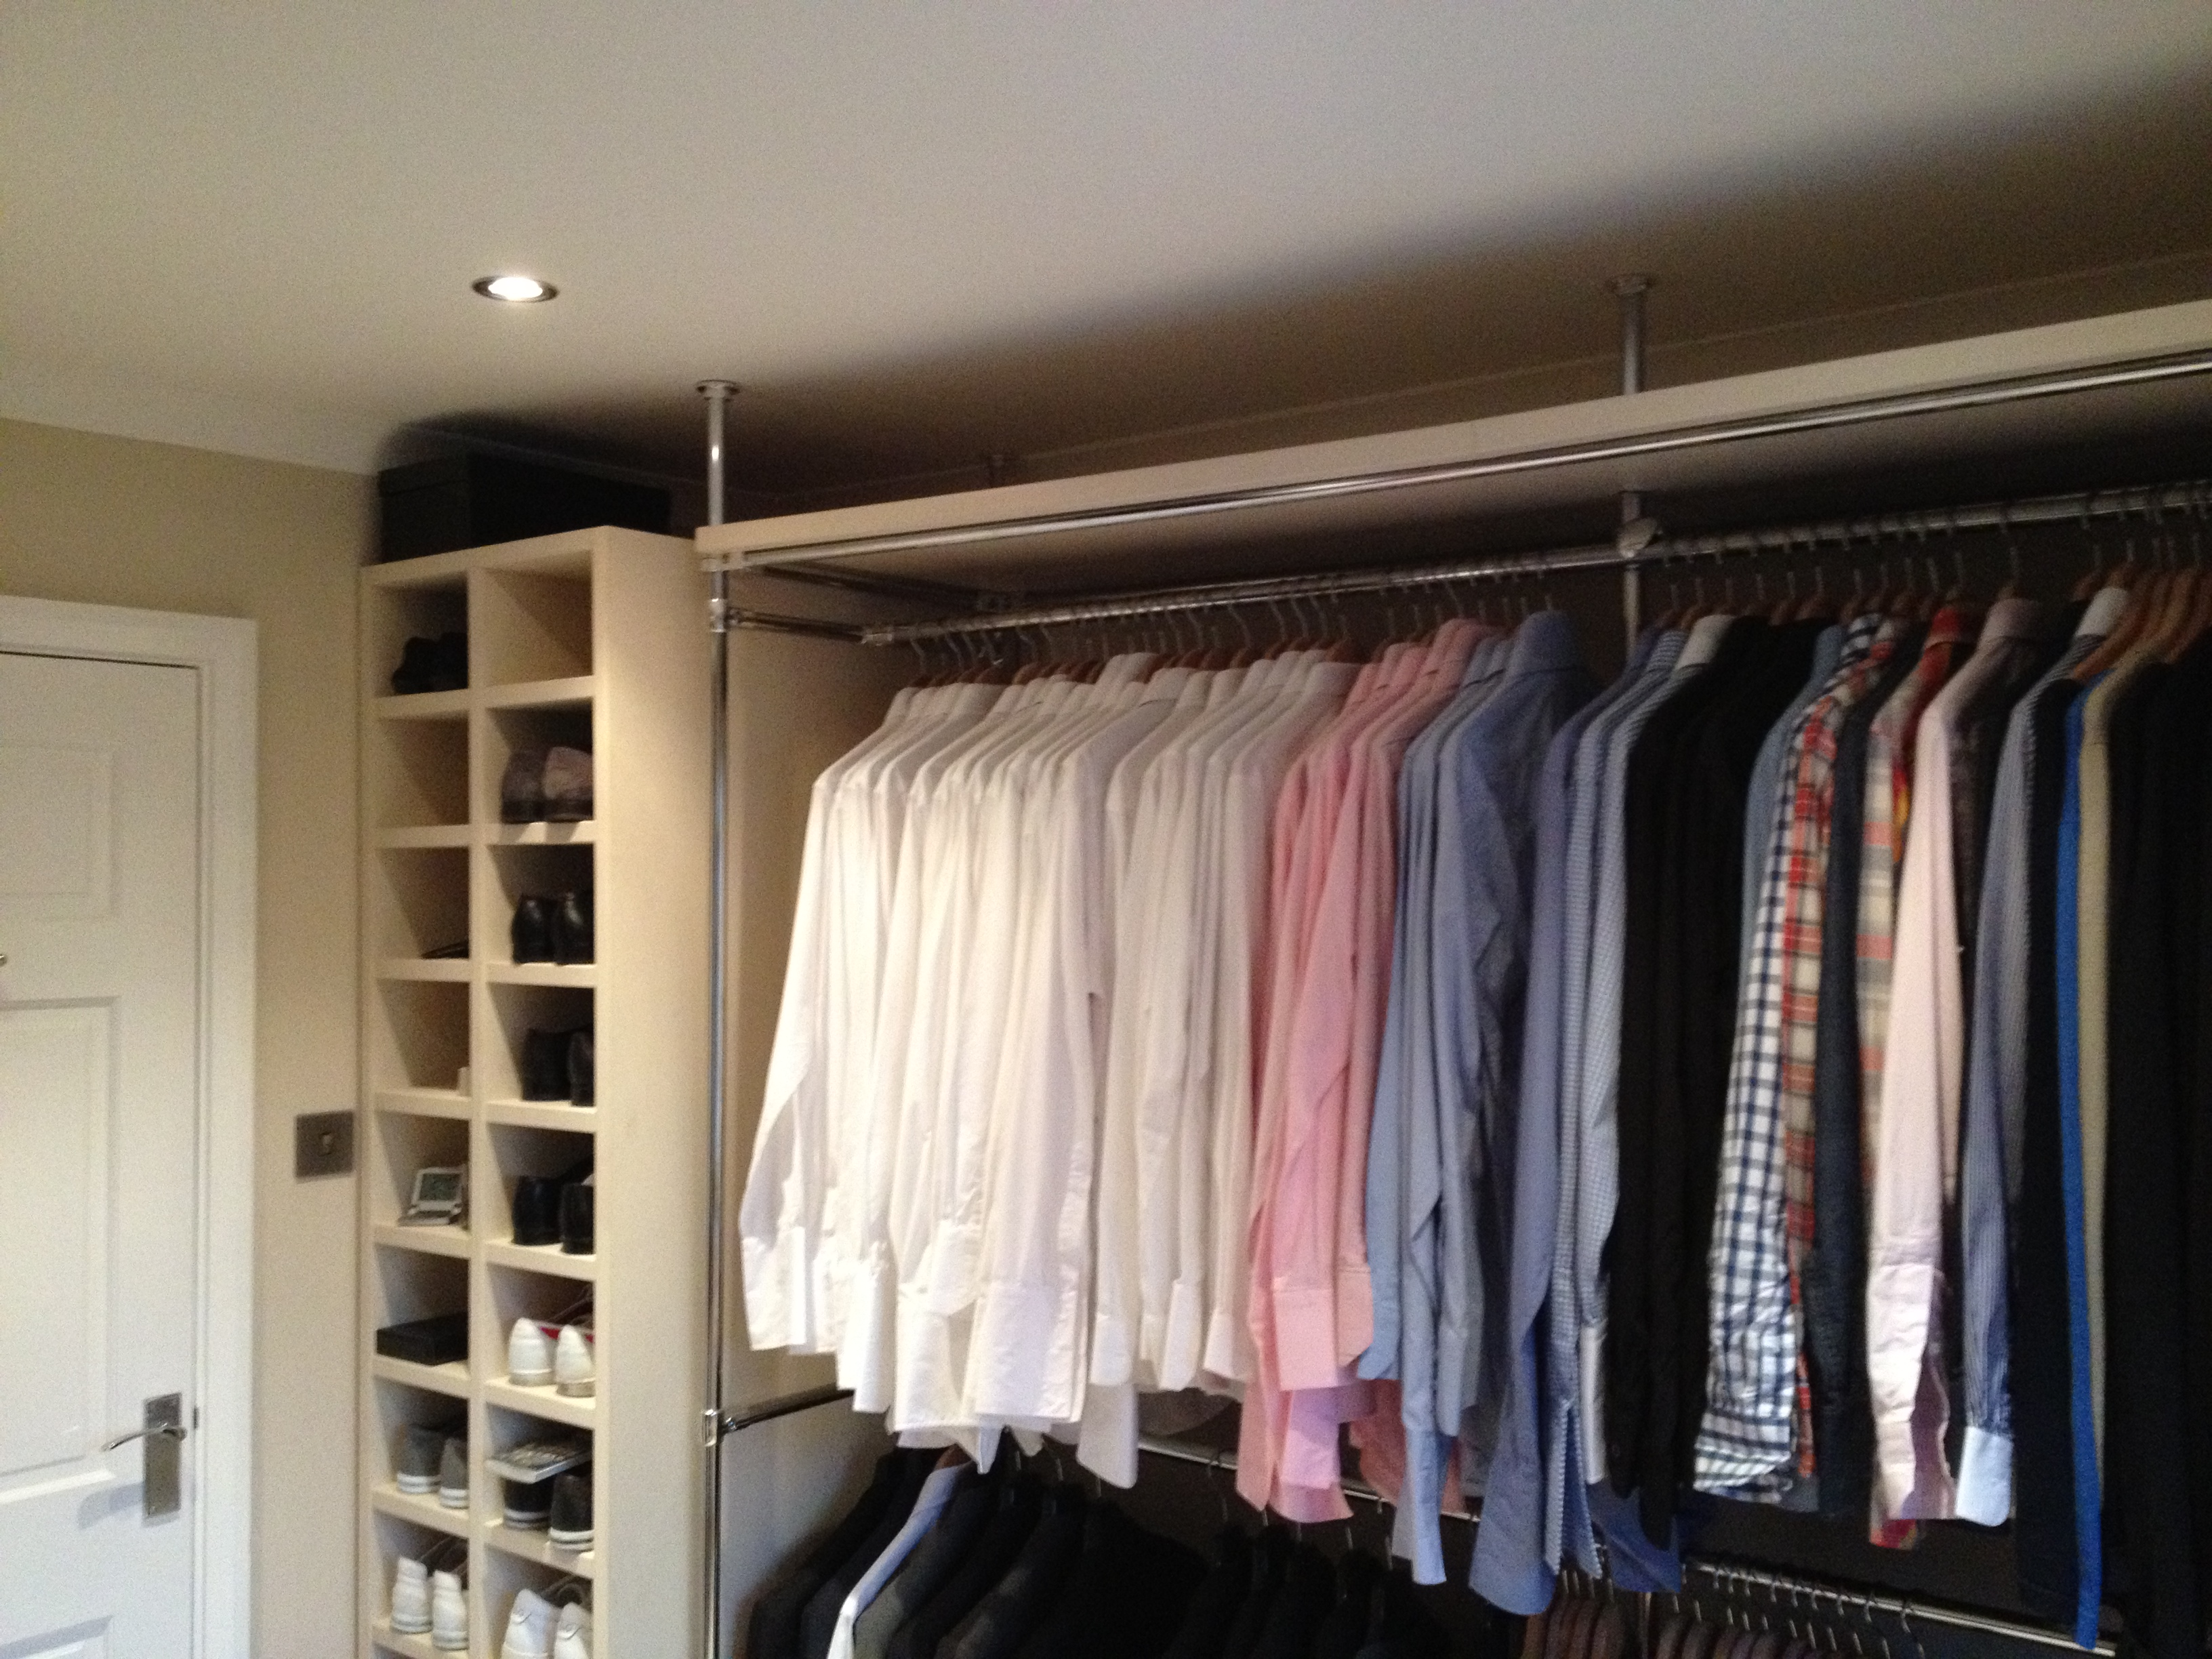 From fitted wardrobes to kitchen installations